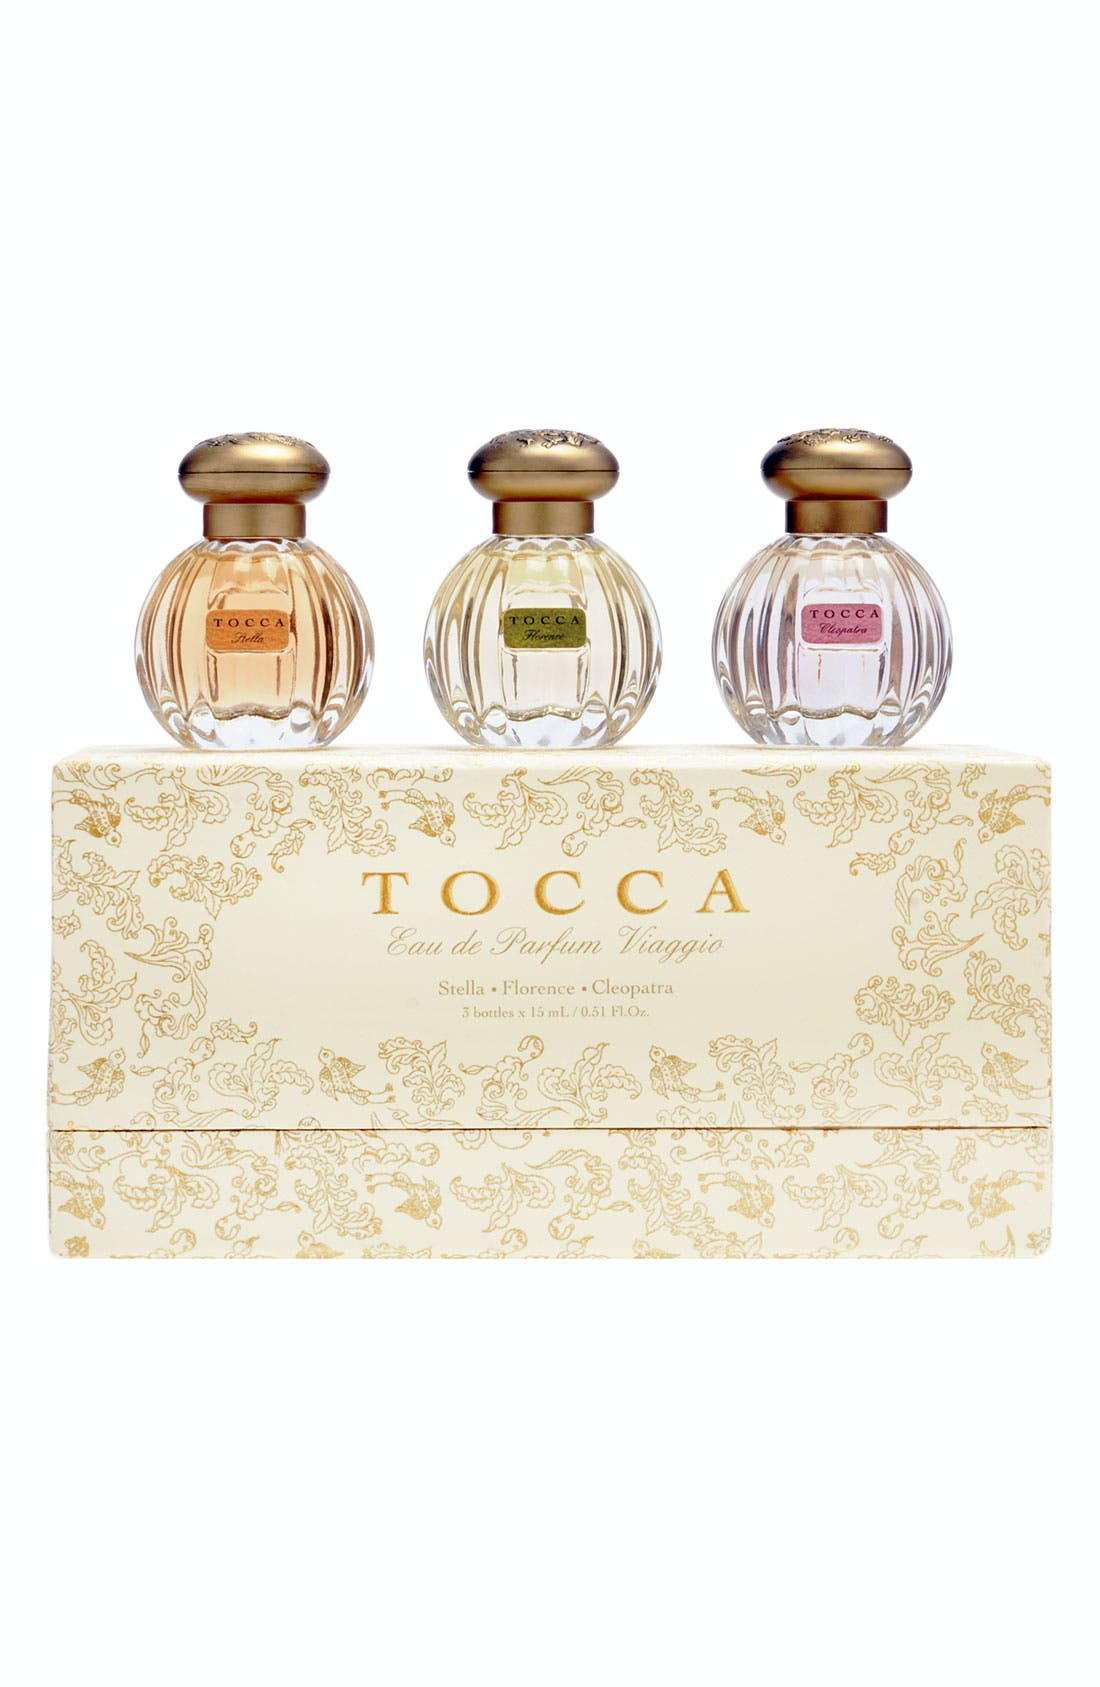 Perfume Gifts Value Sets Nordstrom Chance Parfums Miniature Parfum Gift Set